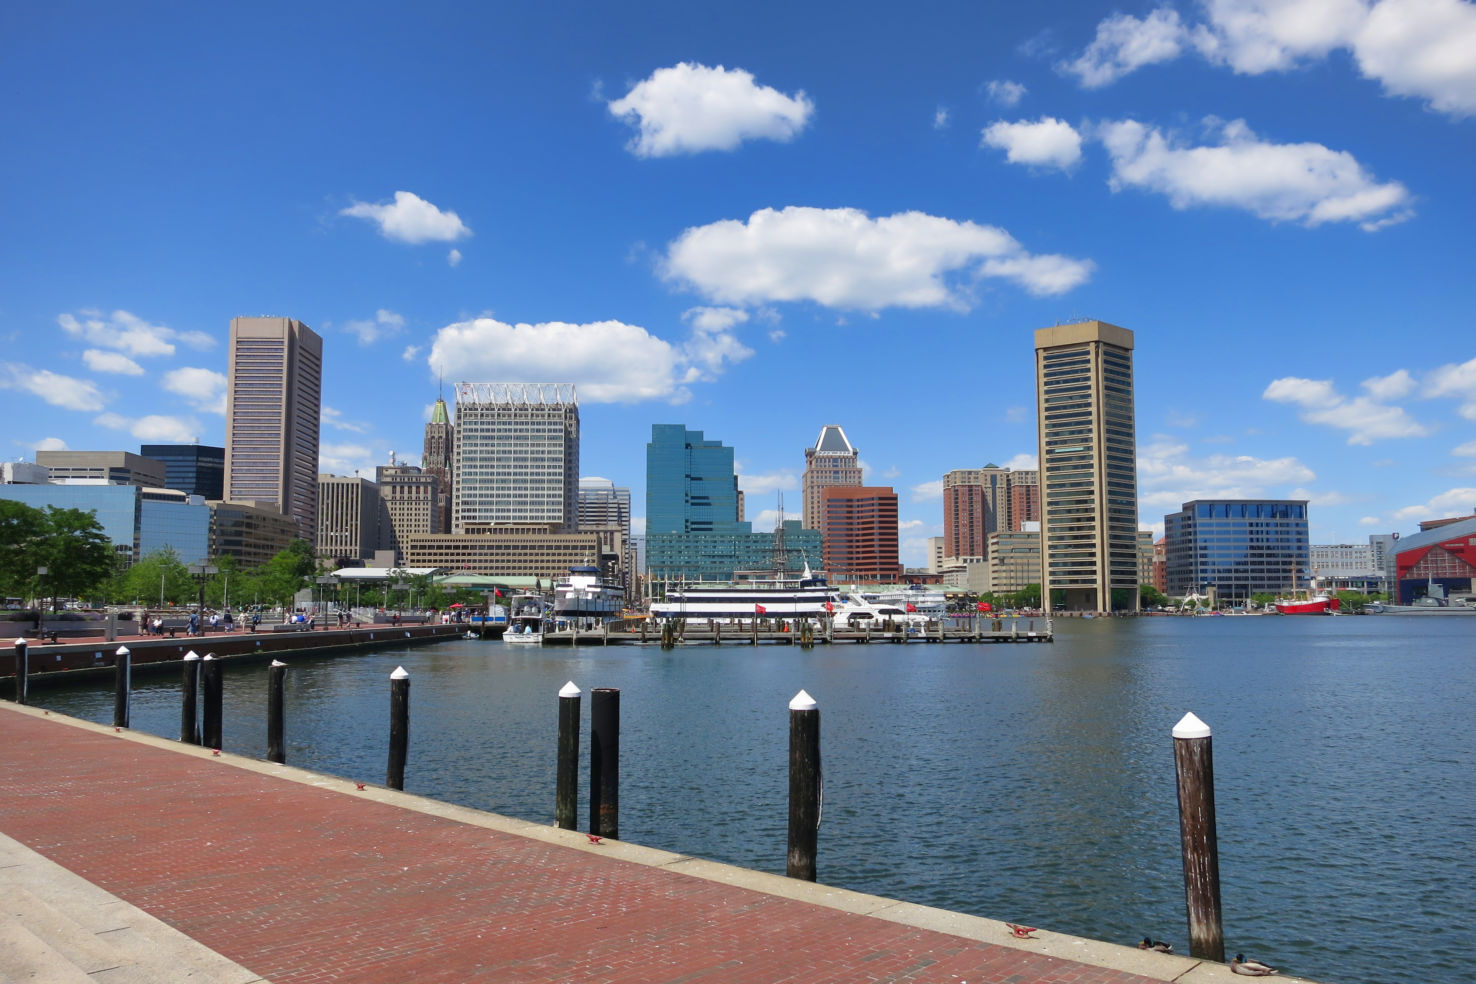 Baltimore Maryland inner Harbor, downtown skyline cityscape, excursion boats, port